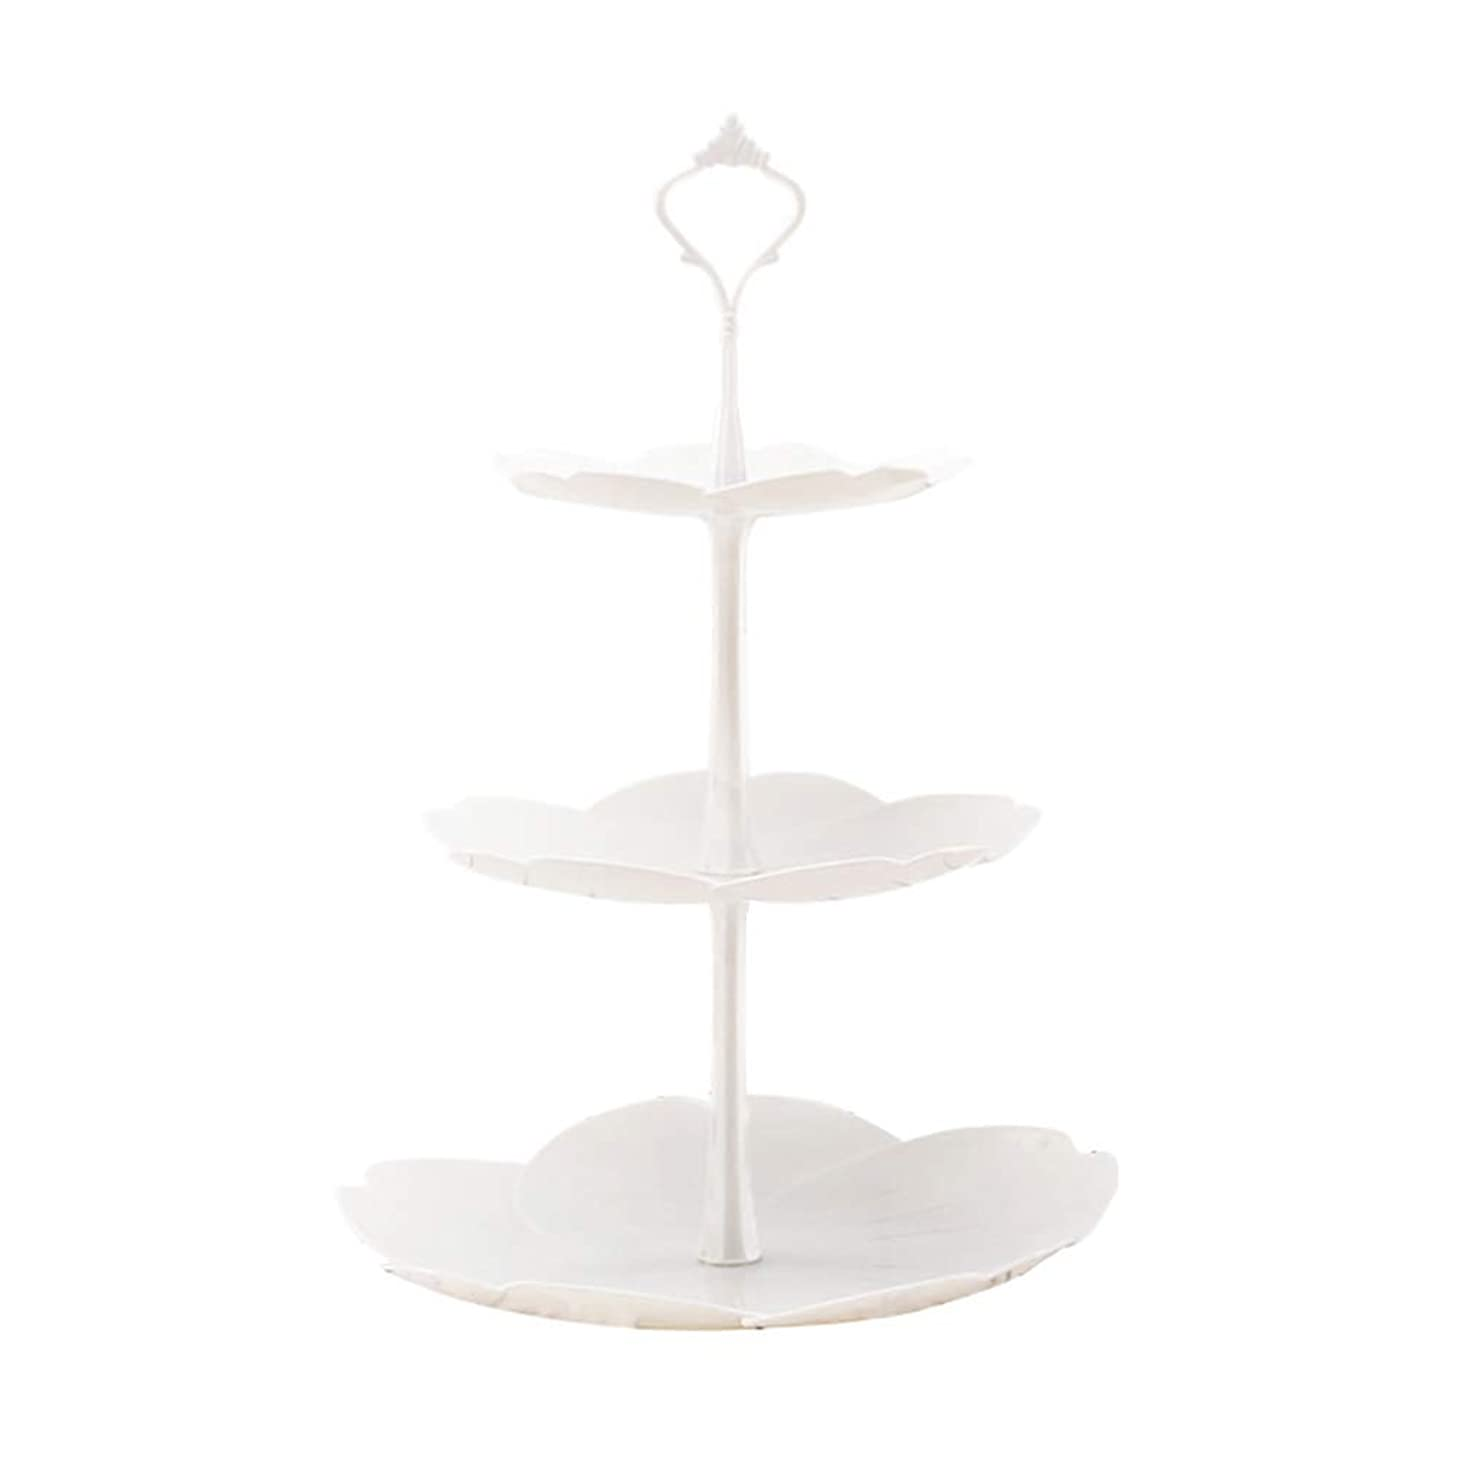 lightclub Fruit Cake Plate Holder 3-Layer Cake Stand Home Festival Party Dessert Storage Rack White 3